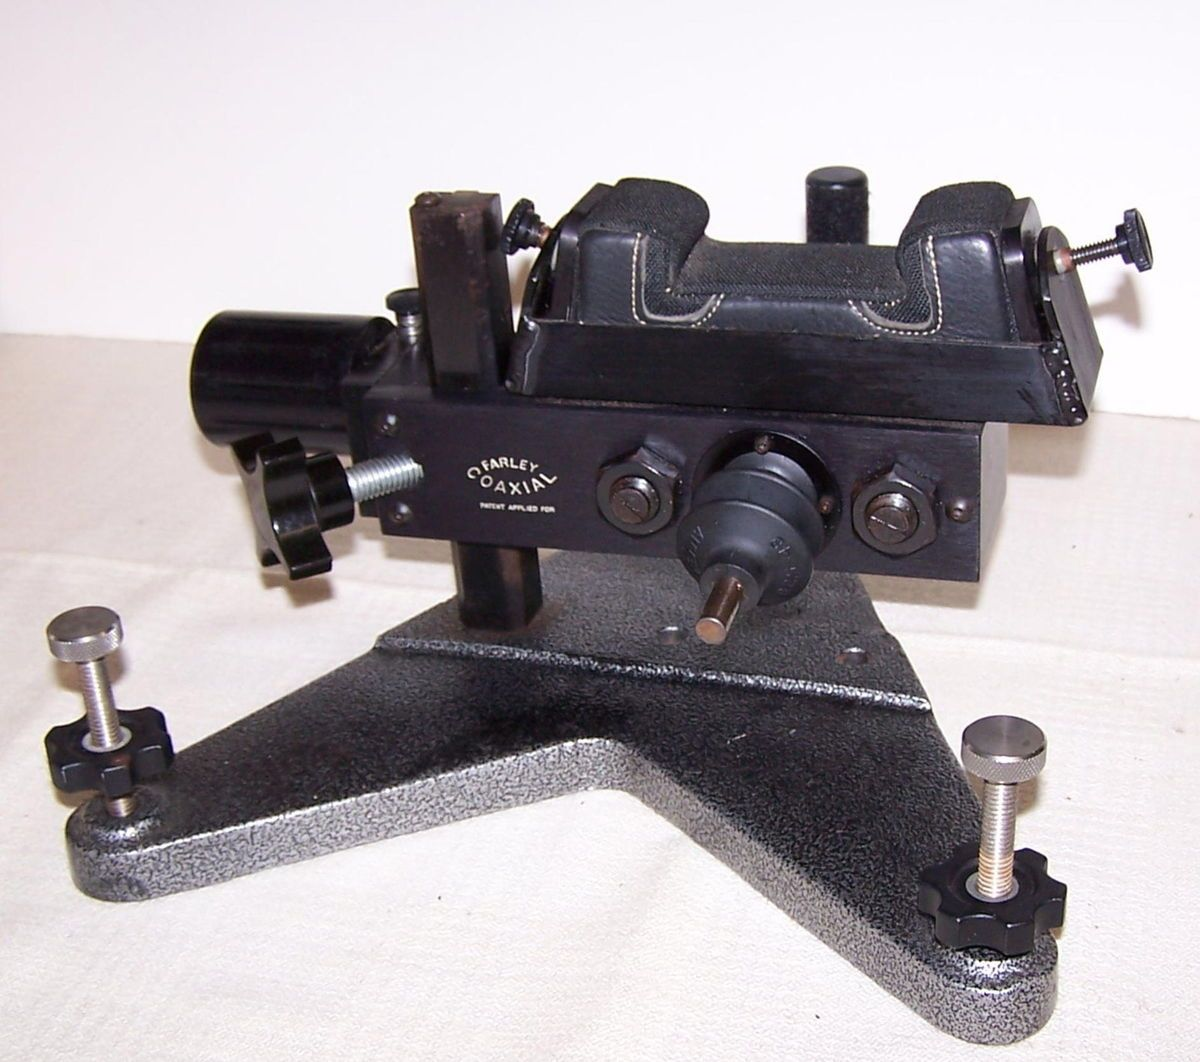 Farley Co Axial Front Rest Bench Rest Rifle Rest Gun Rest Super Nice